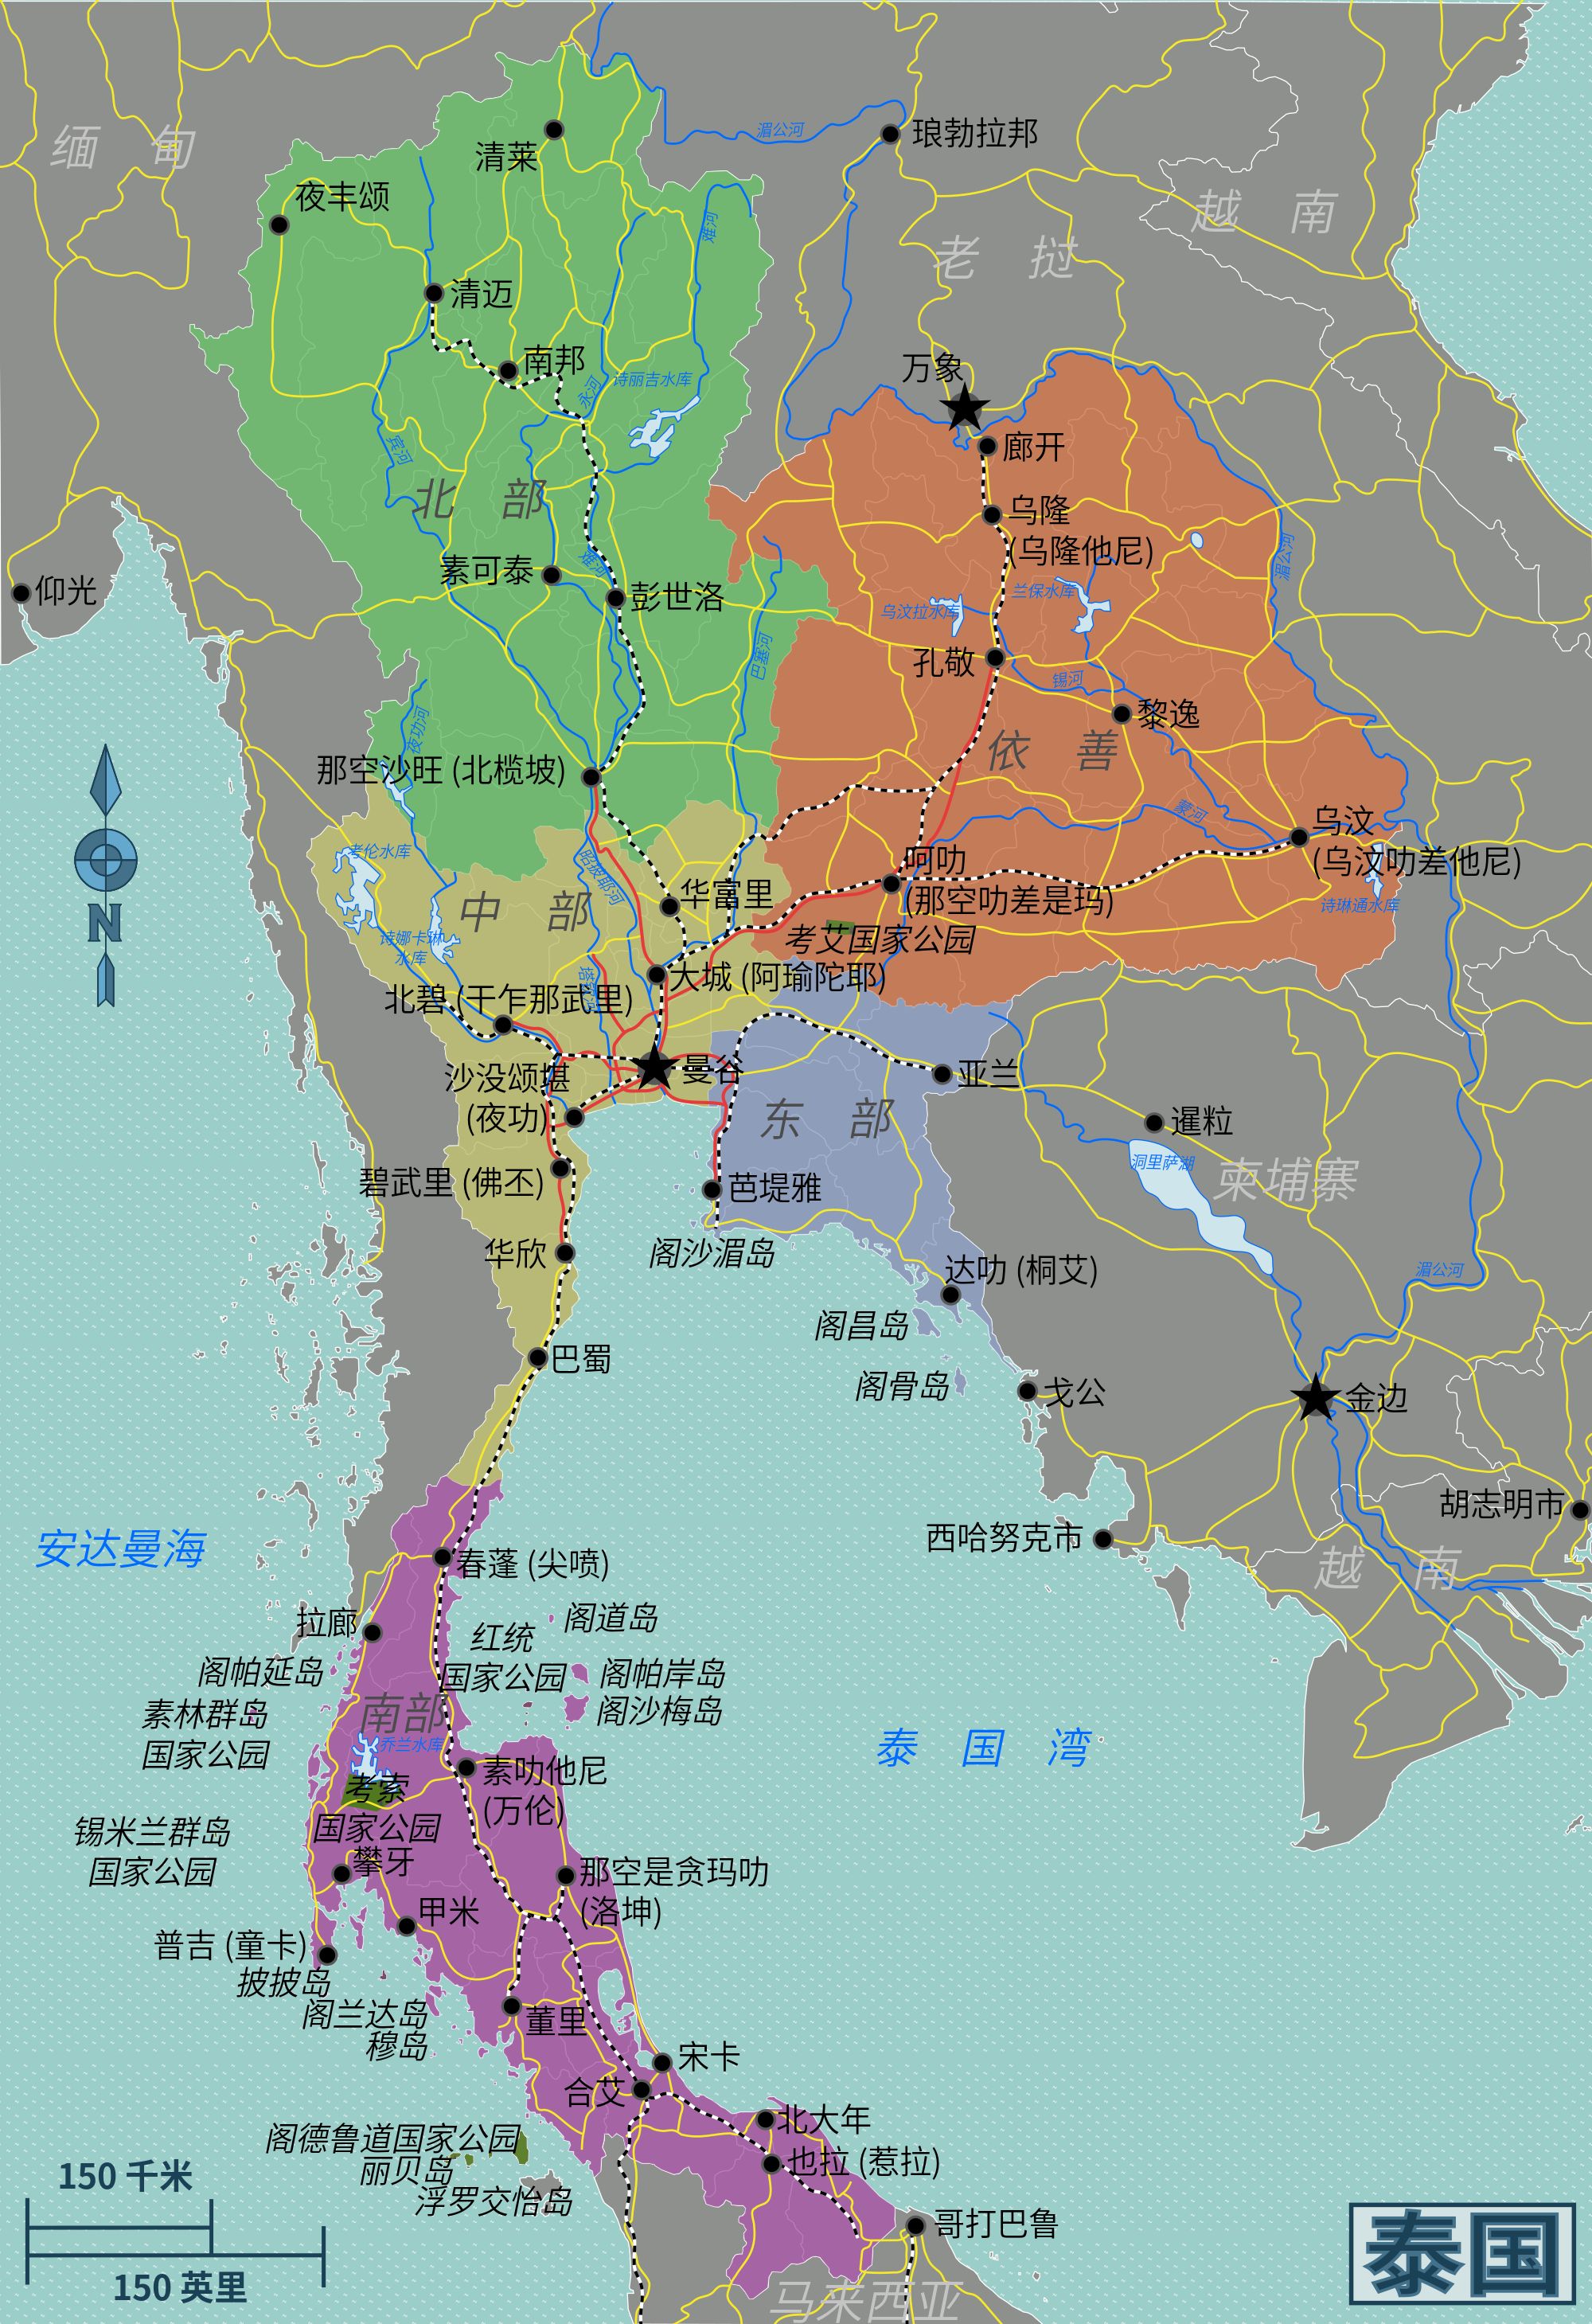 FileThailand Regions Map Zhhanspng Wikimedia Commons - Thailand regions map